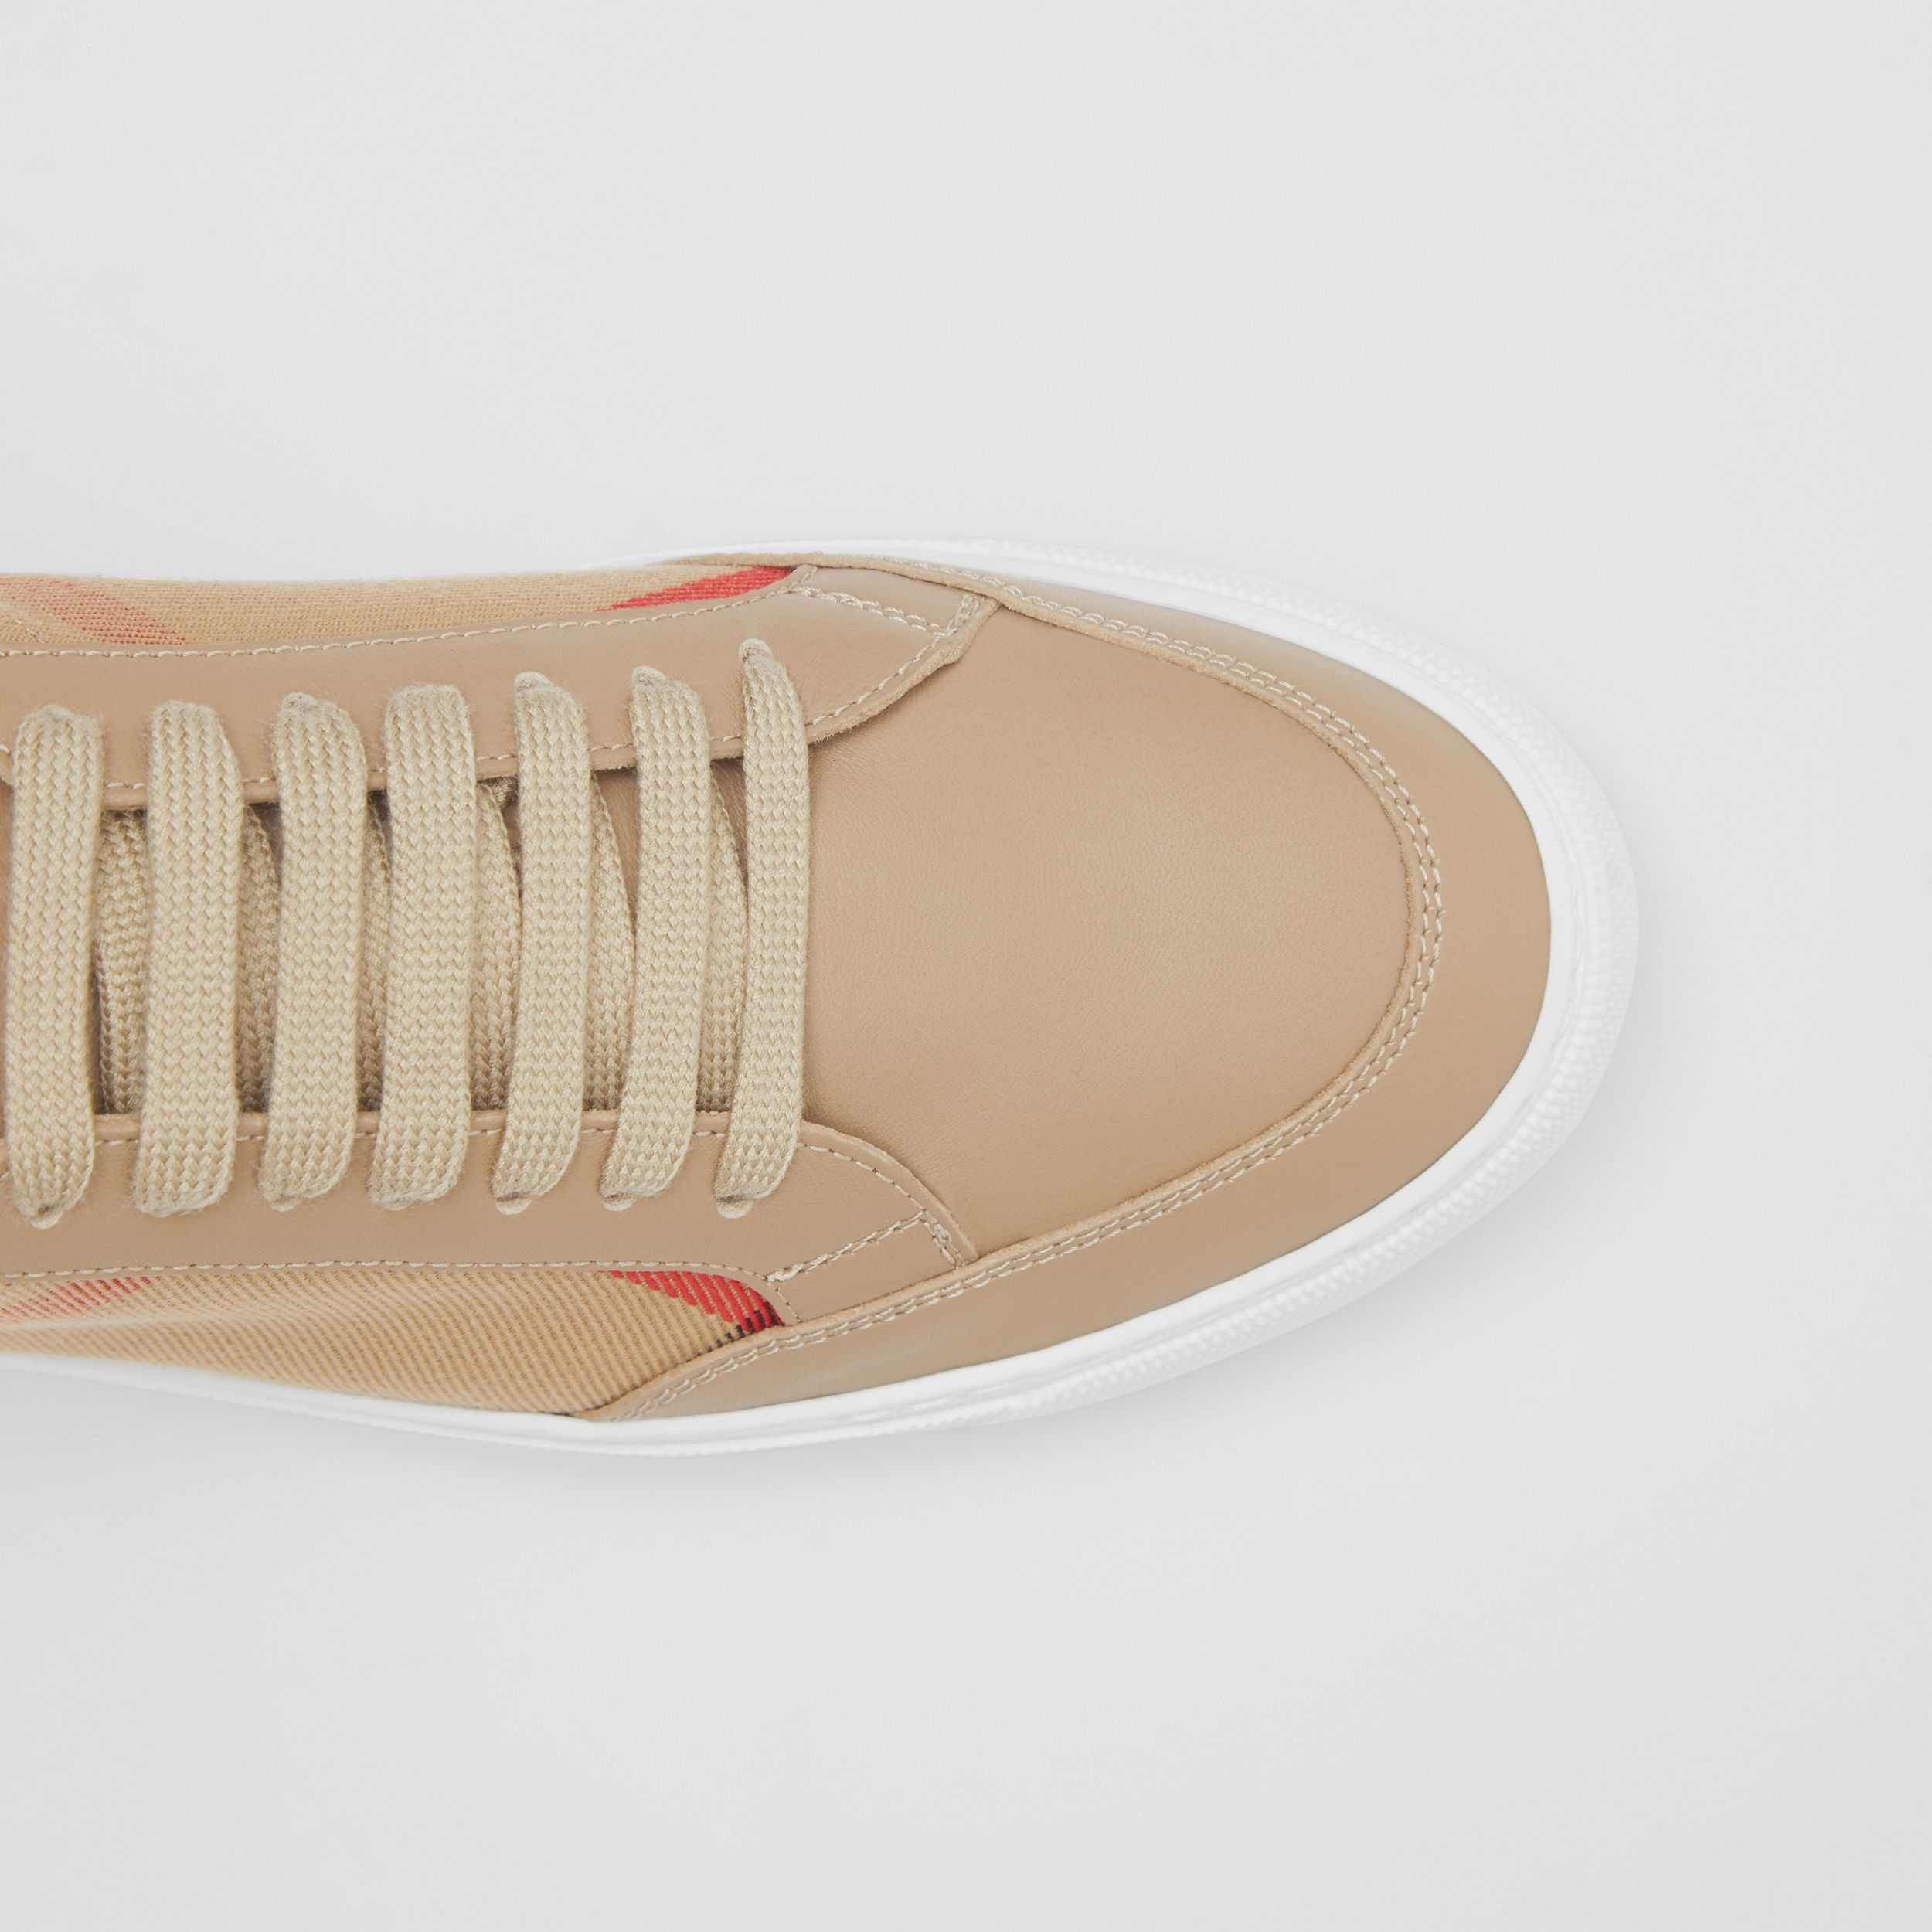 House Check and Leather Sneakers in Tan - Women | Burberry - 2